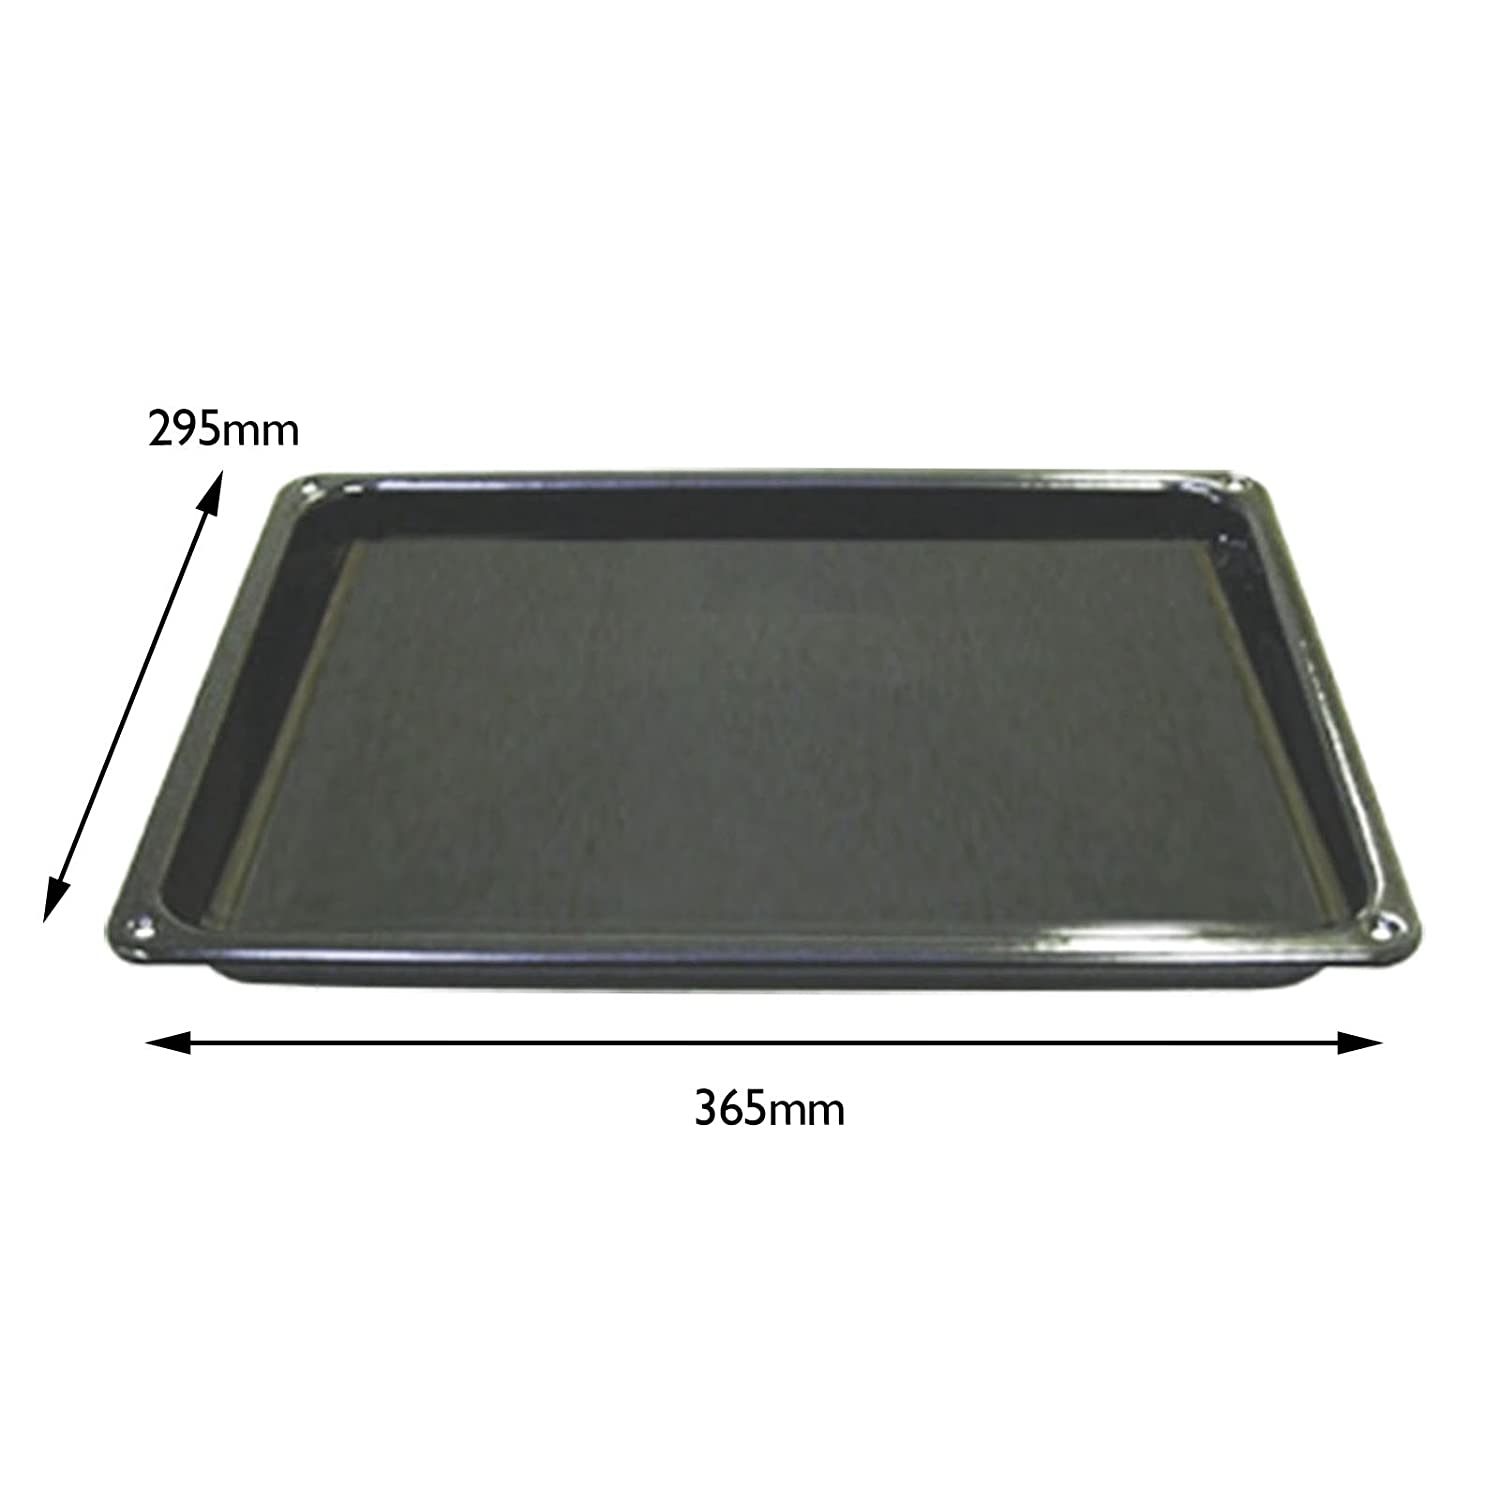 SPARES2GO Grill Pan Tray for Logik Oven Cookers (365 x 295 mm)